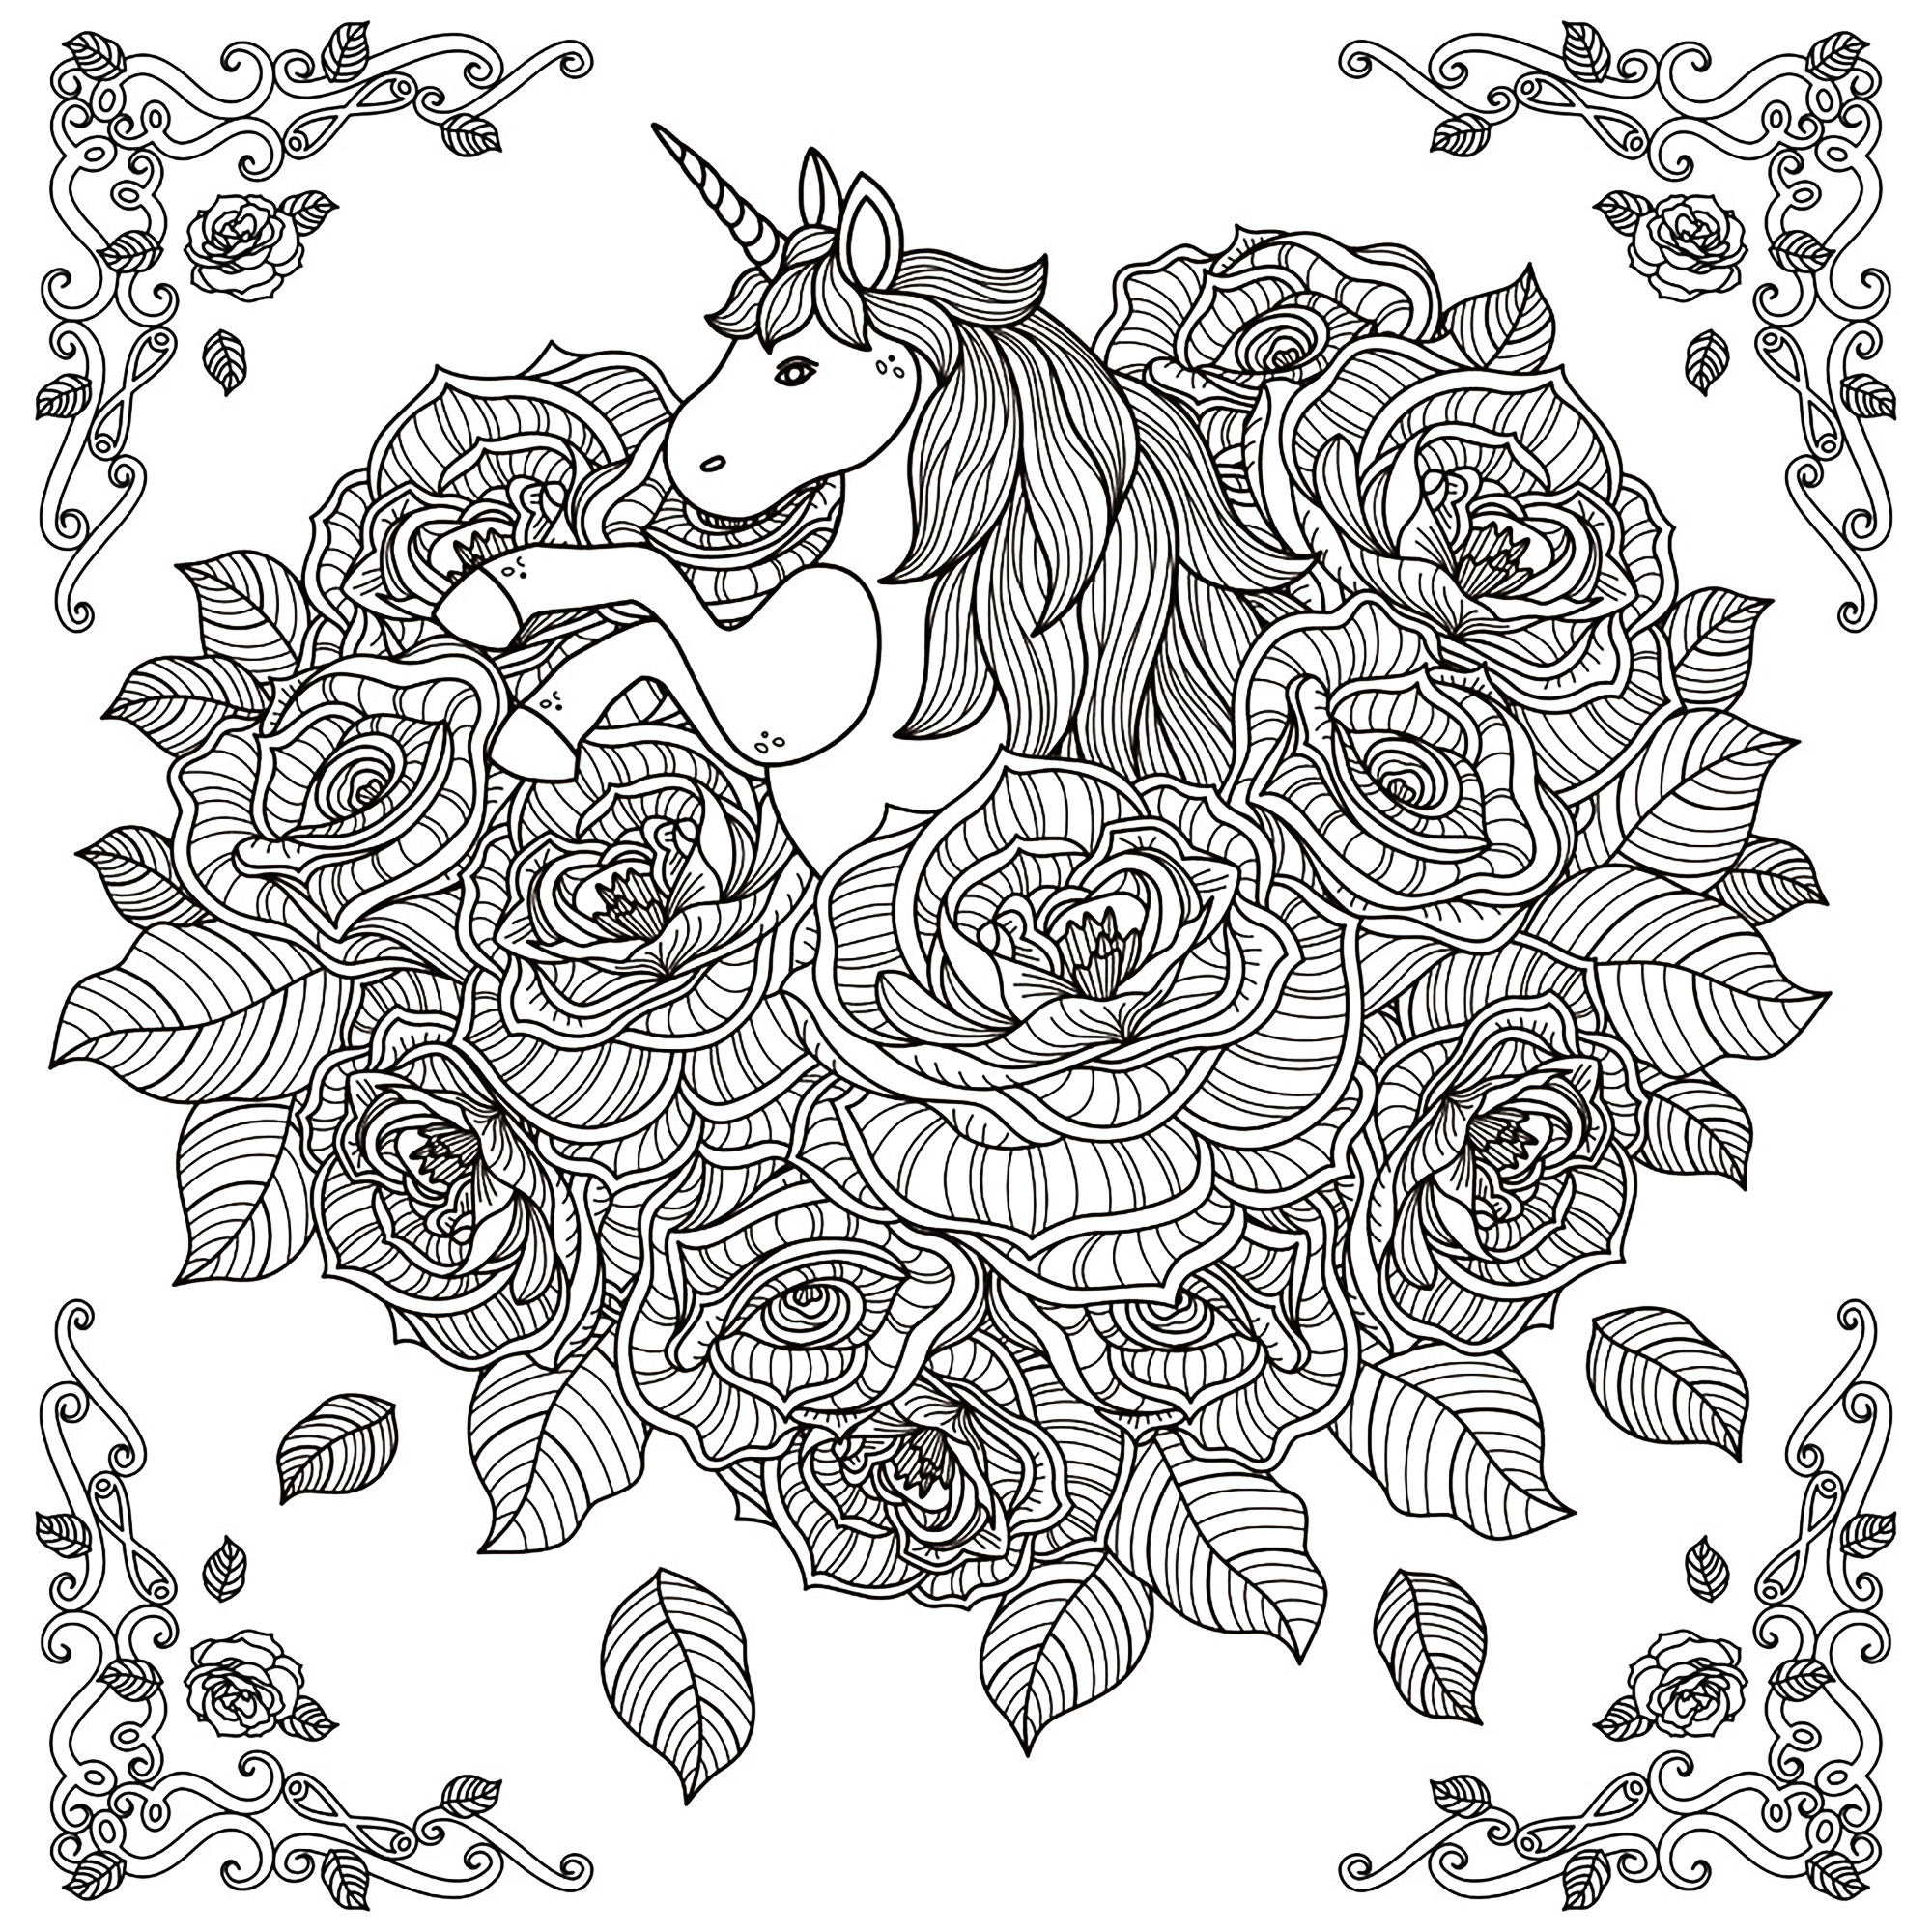 Coloring pages adults unicorn mandala by kchung